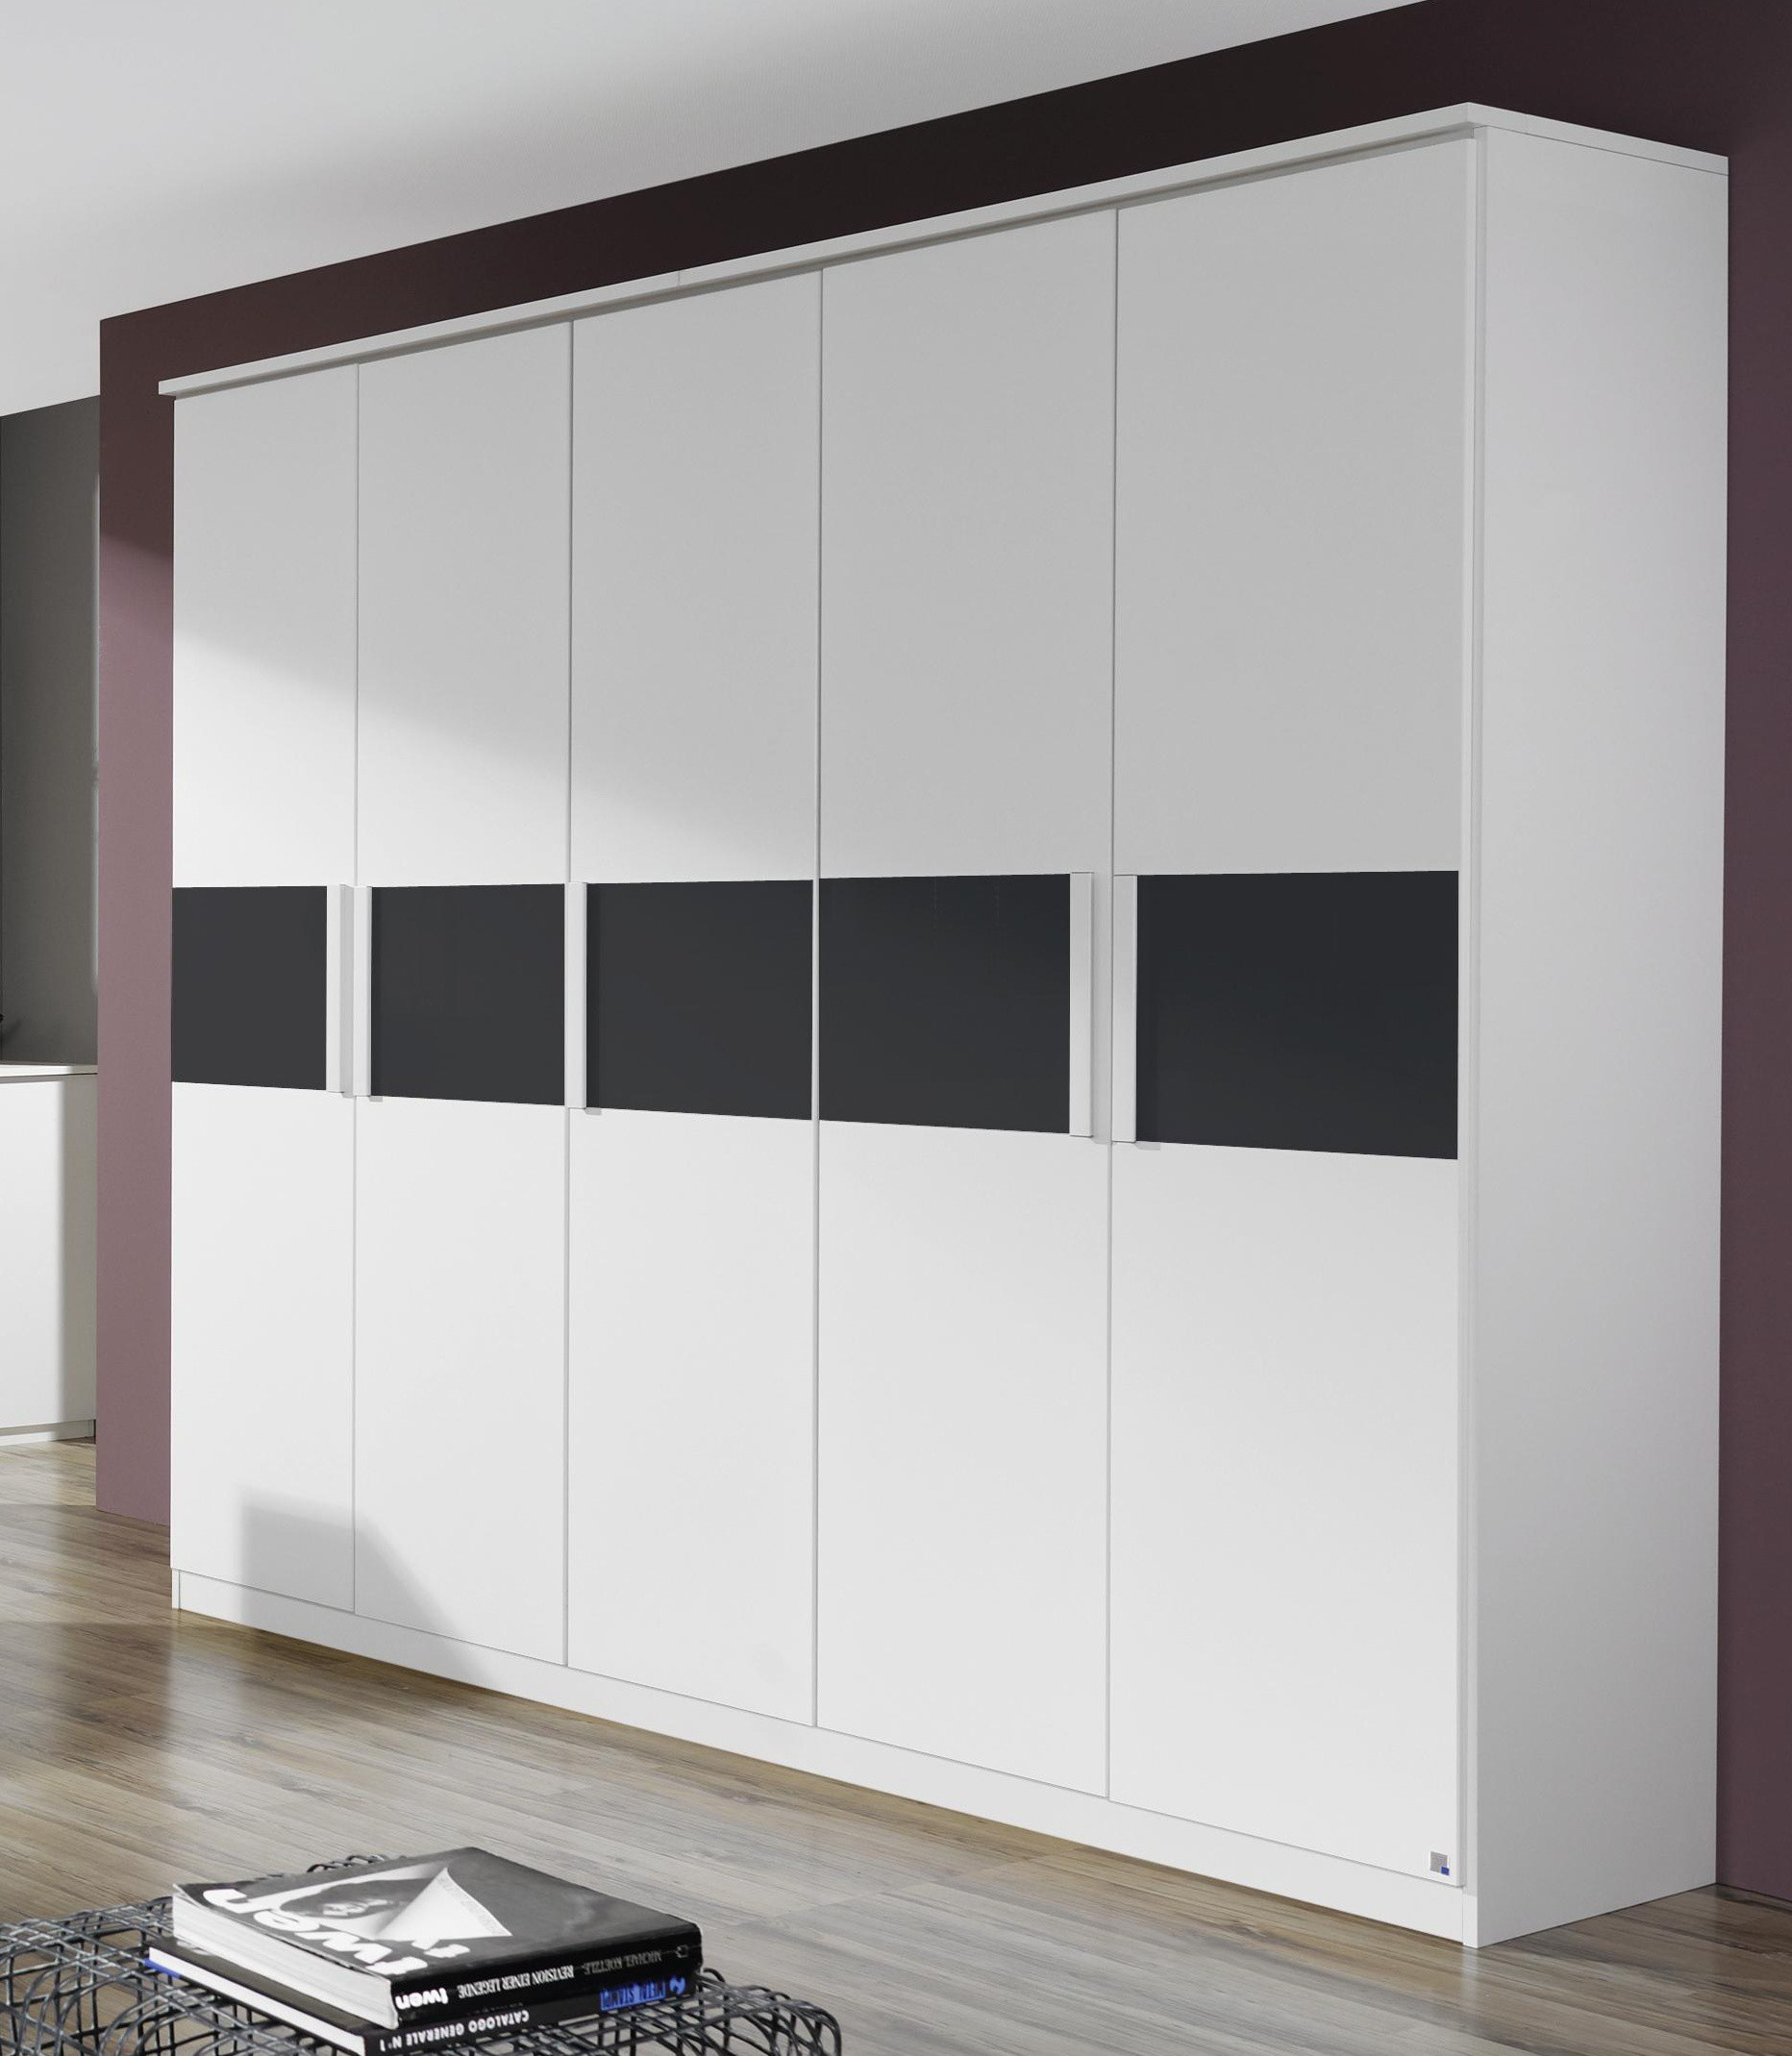 Armoires keko furniture - Armoire design blanche ...